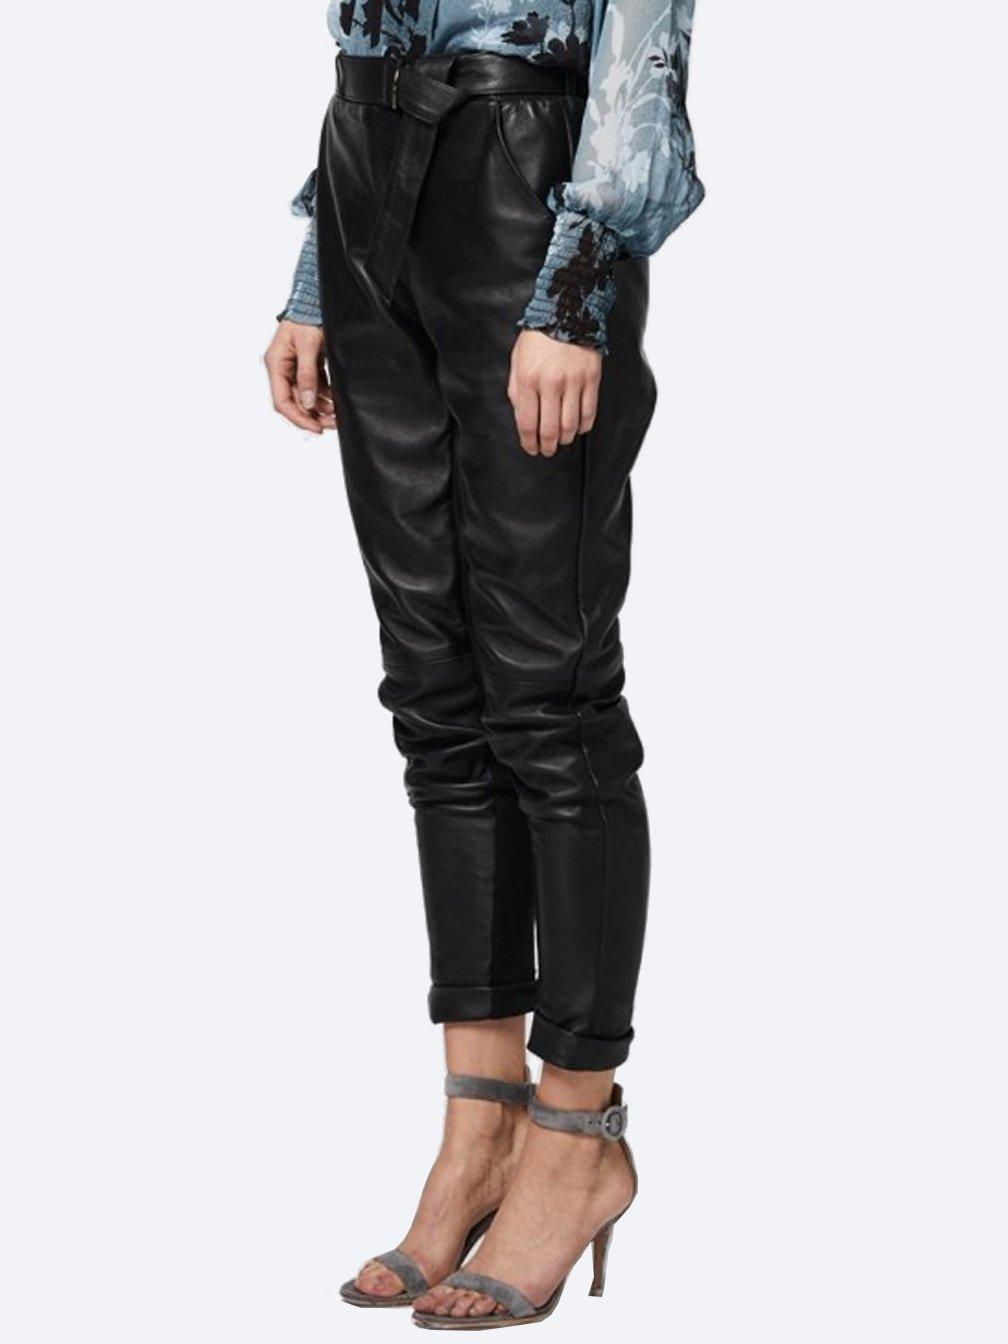 Yeltuor - ONCE WAS - Pants - ONCE WAS ASTRAL RELAXED LEATHER PANT -  -